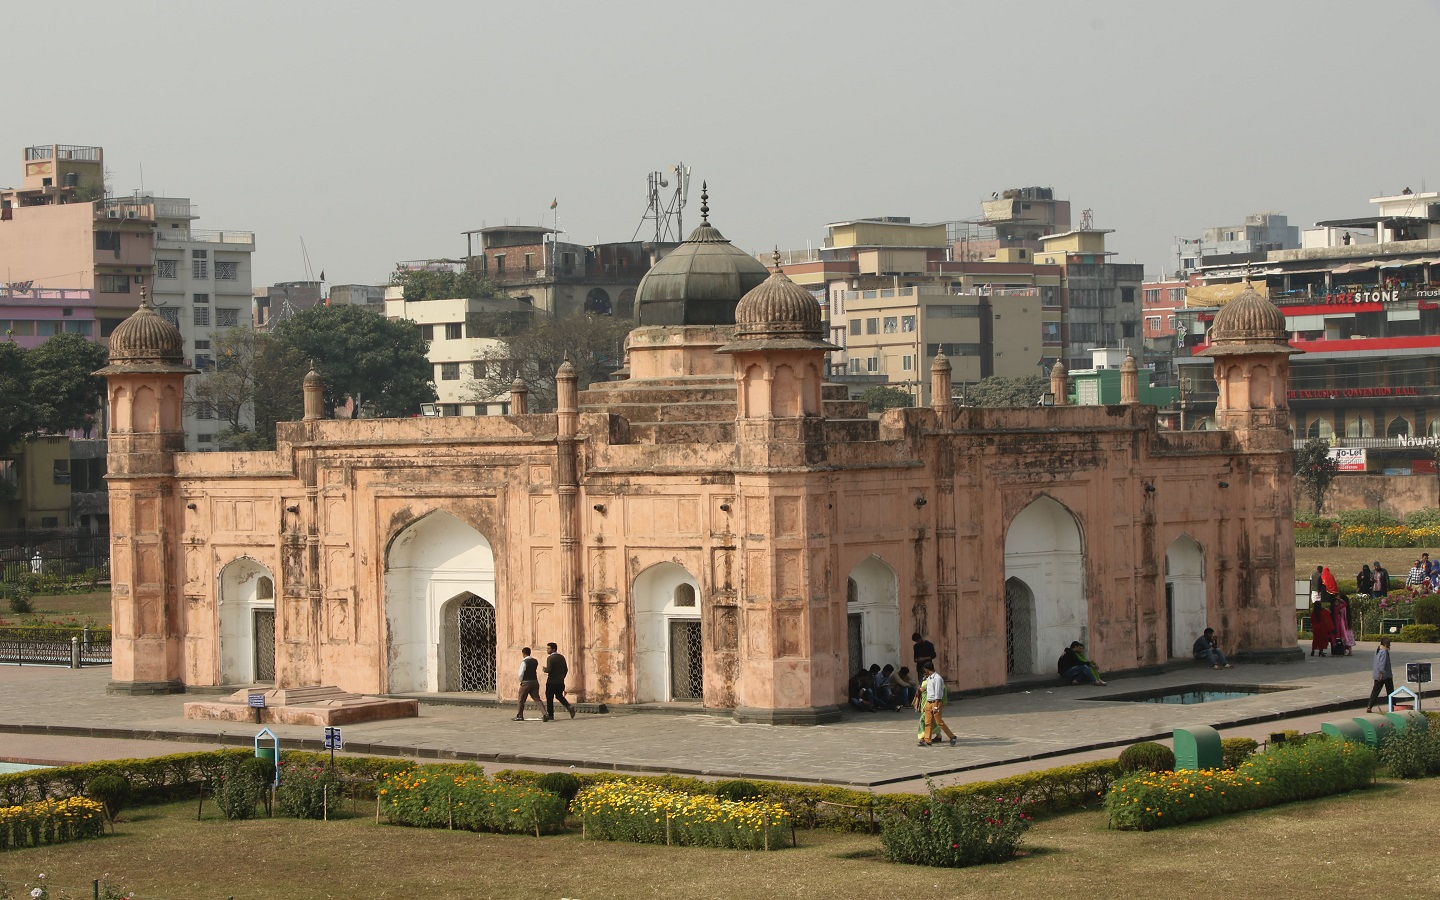 Lalbagh is a 17th century Mughal Fort